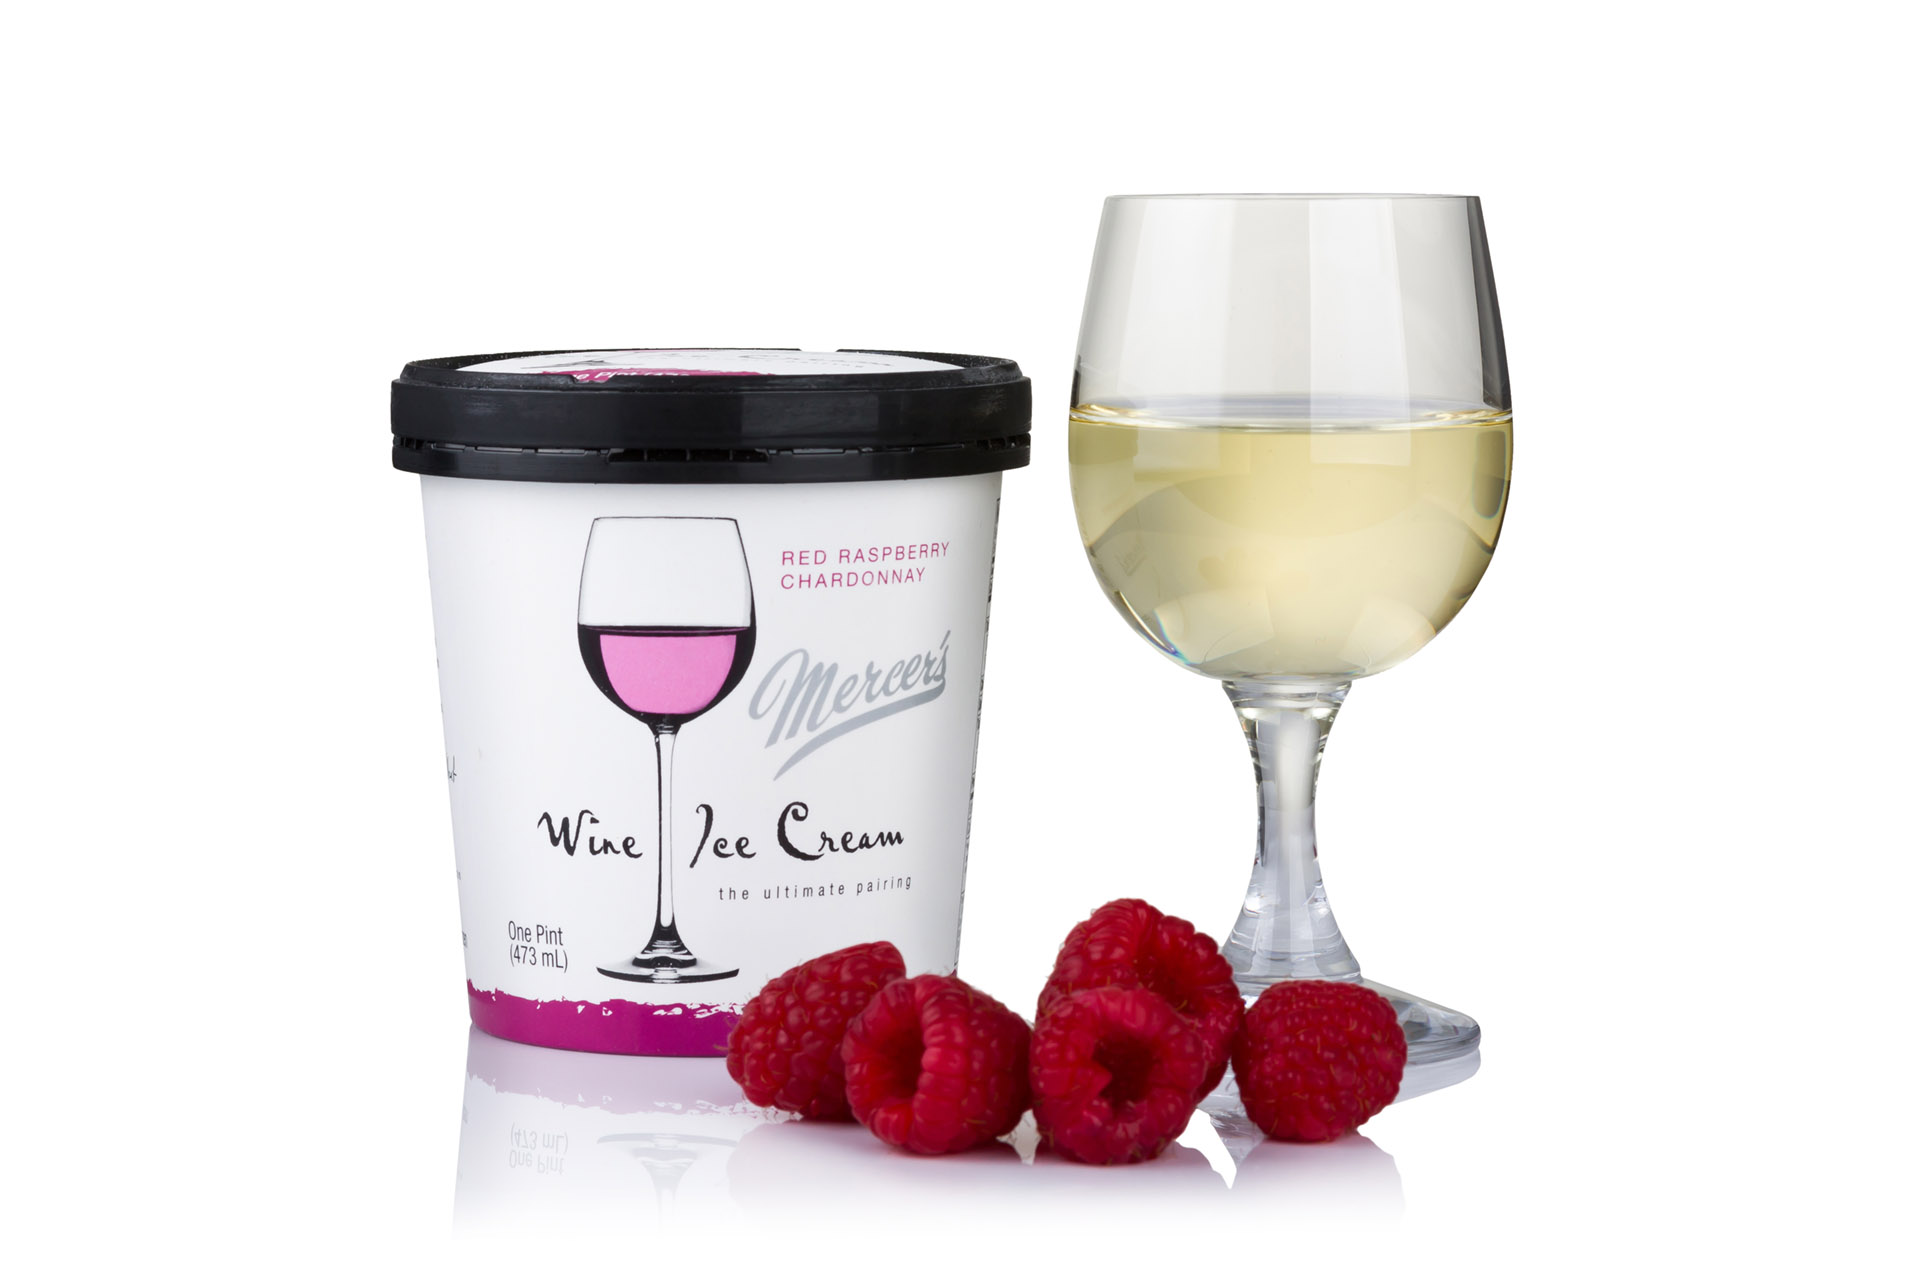 Mercer's Red Raspberry Chardonnay Wine Ice Cream / Photo courtesy Mercer's Dairy